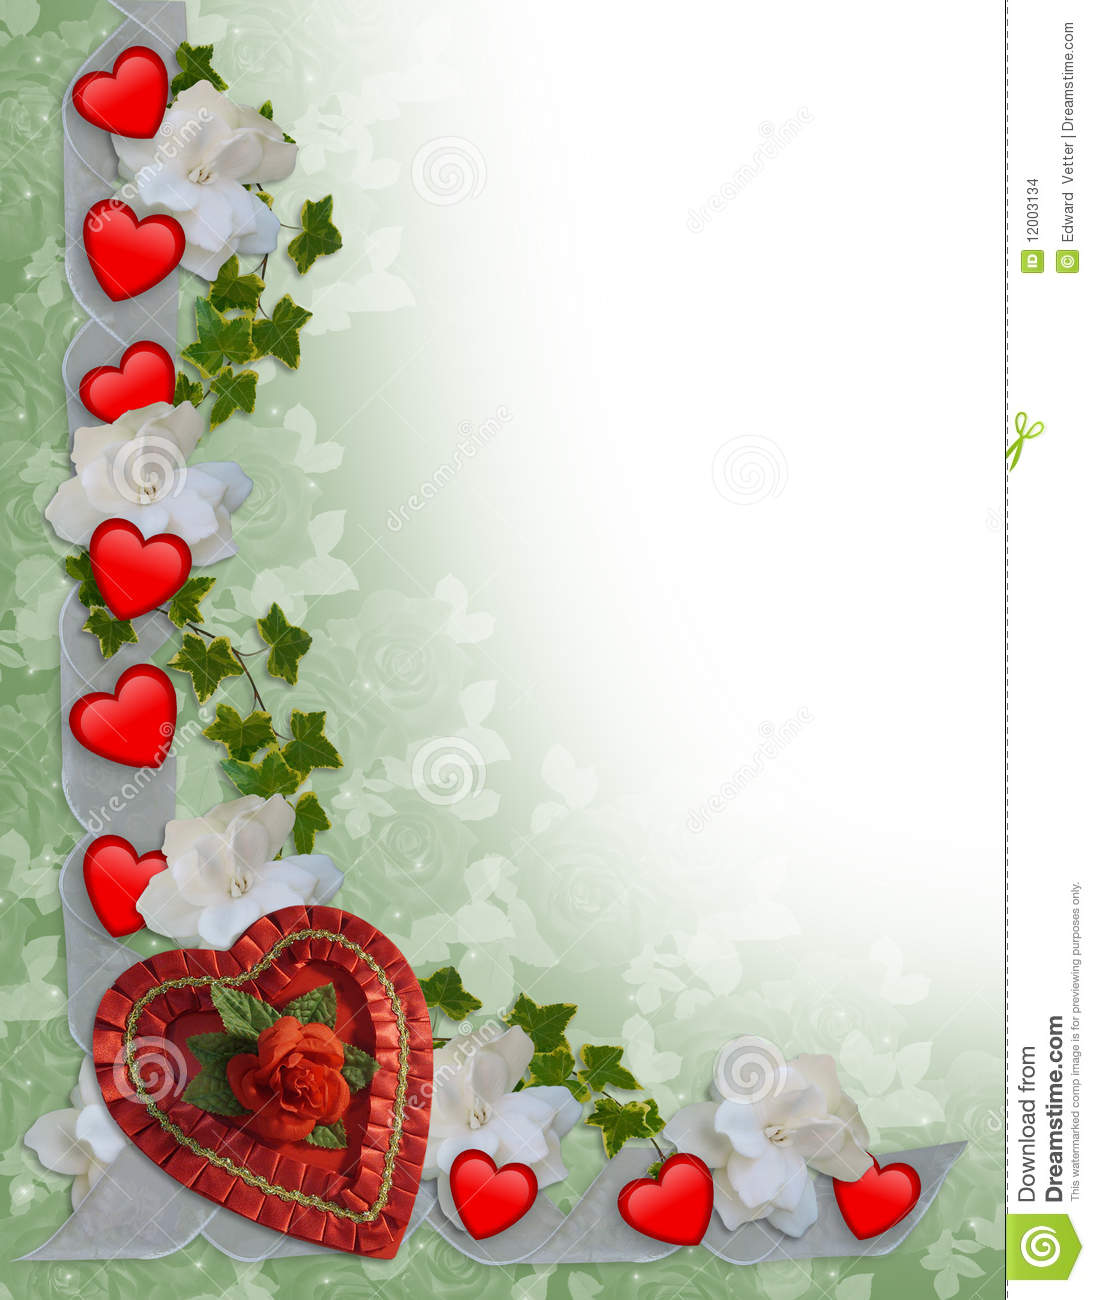 Valentines Day Border Hearts And Ribbons Stock